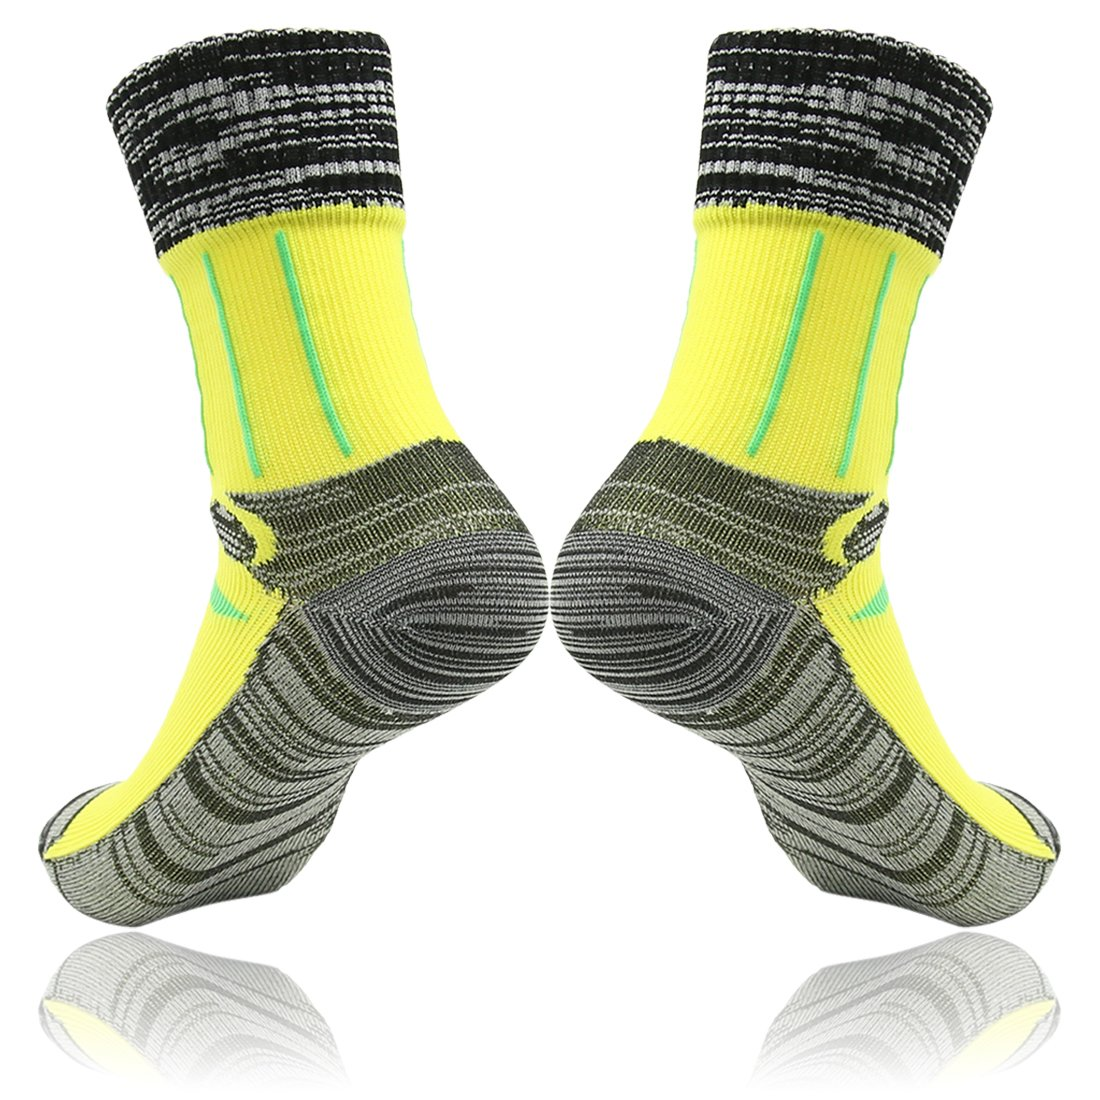 RANDY SUN Unisex Sport Climbing Skiing Trekking Hiking Socks SGS Certified 100/% Waterproof Breathable Socks,